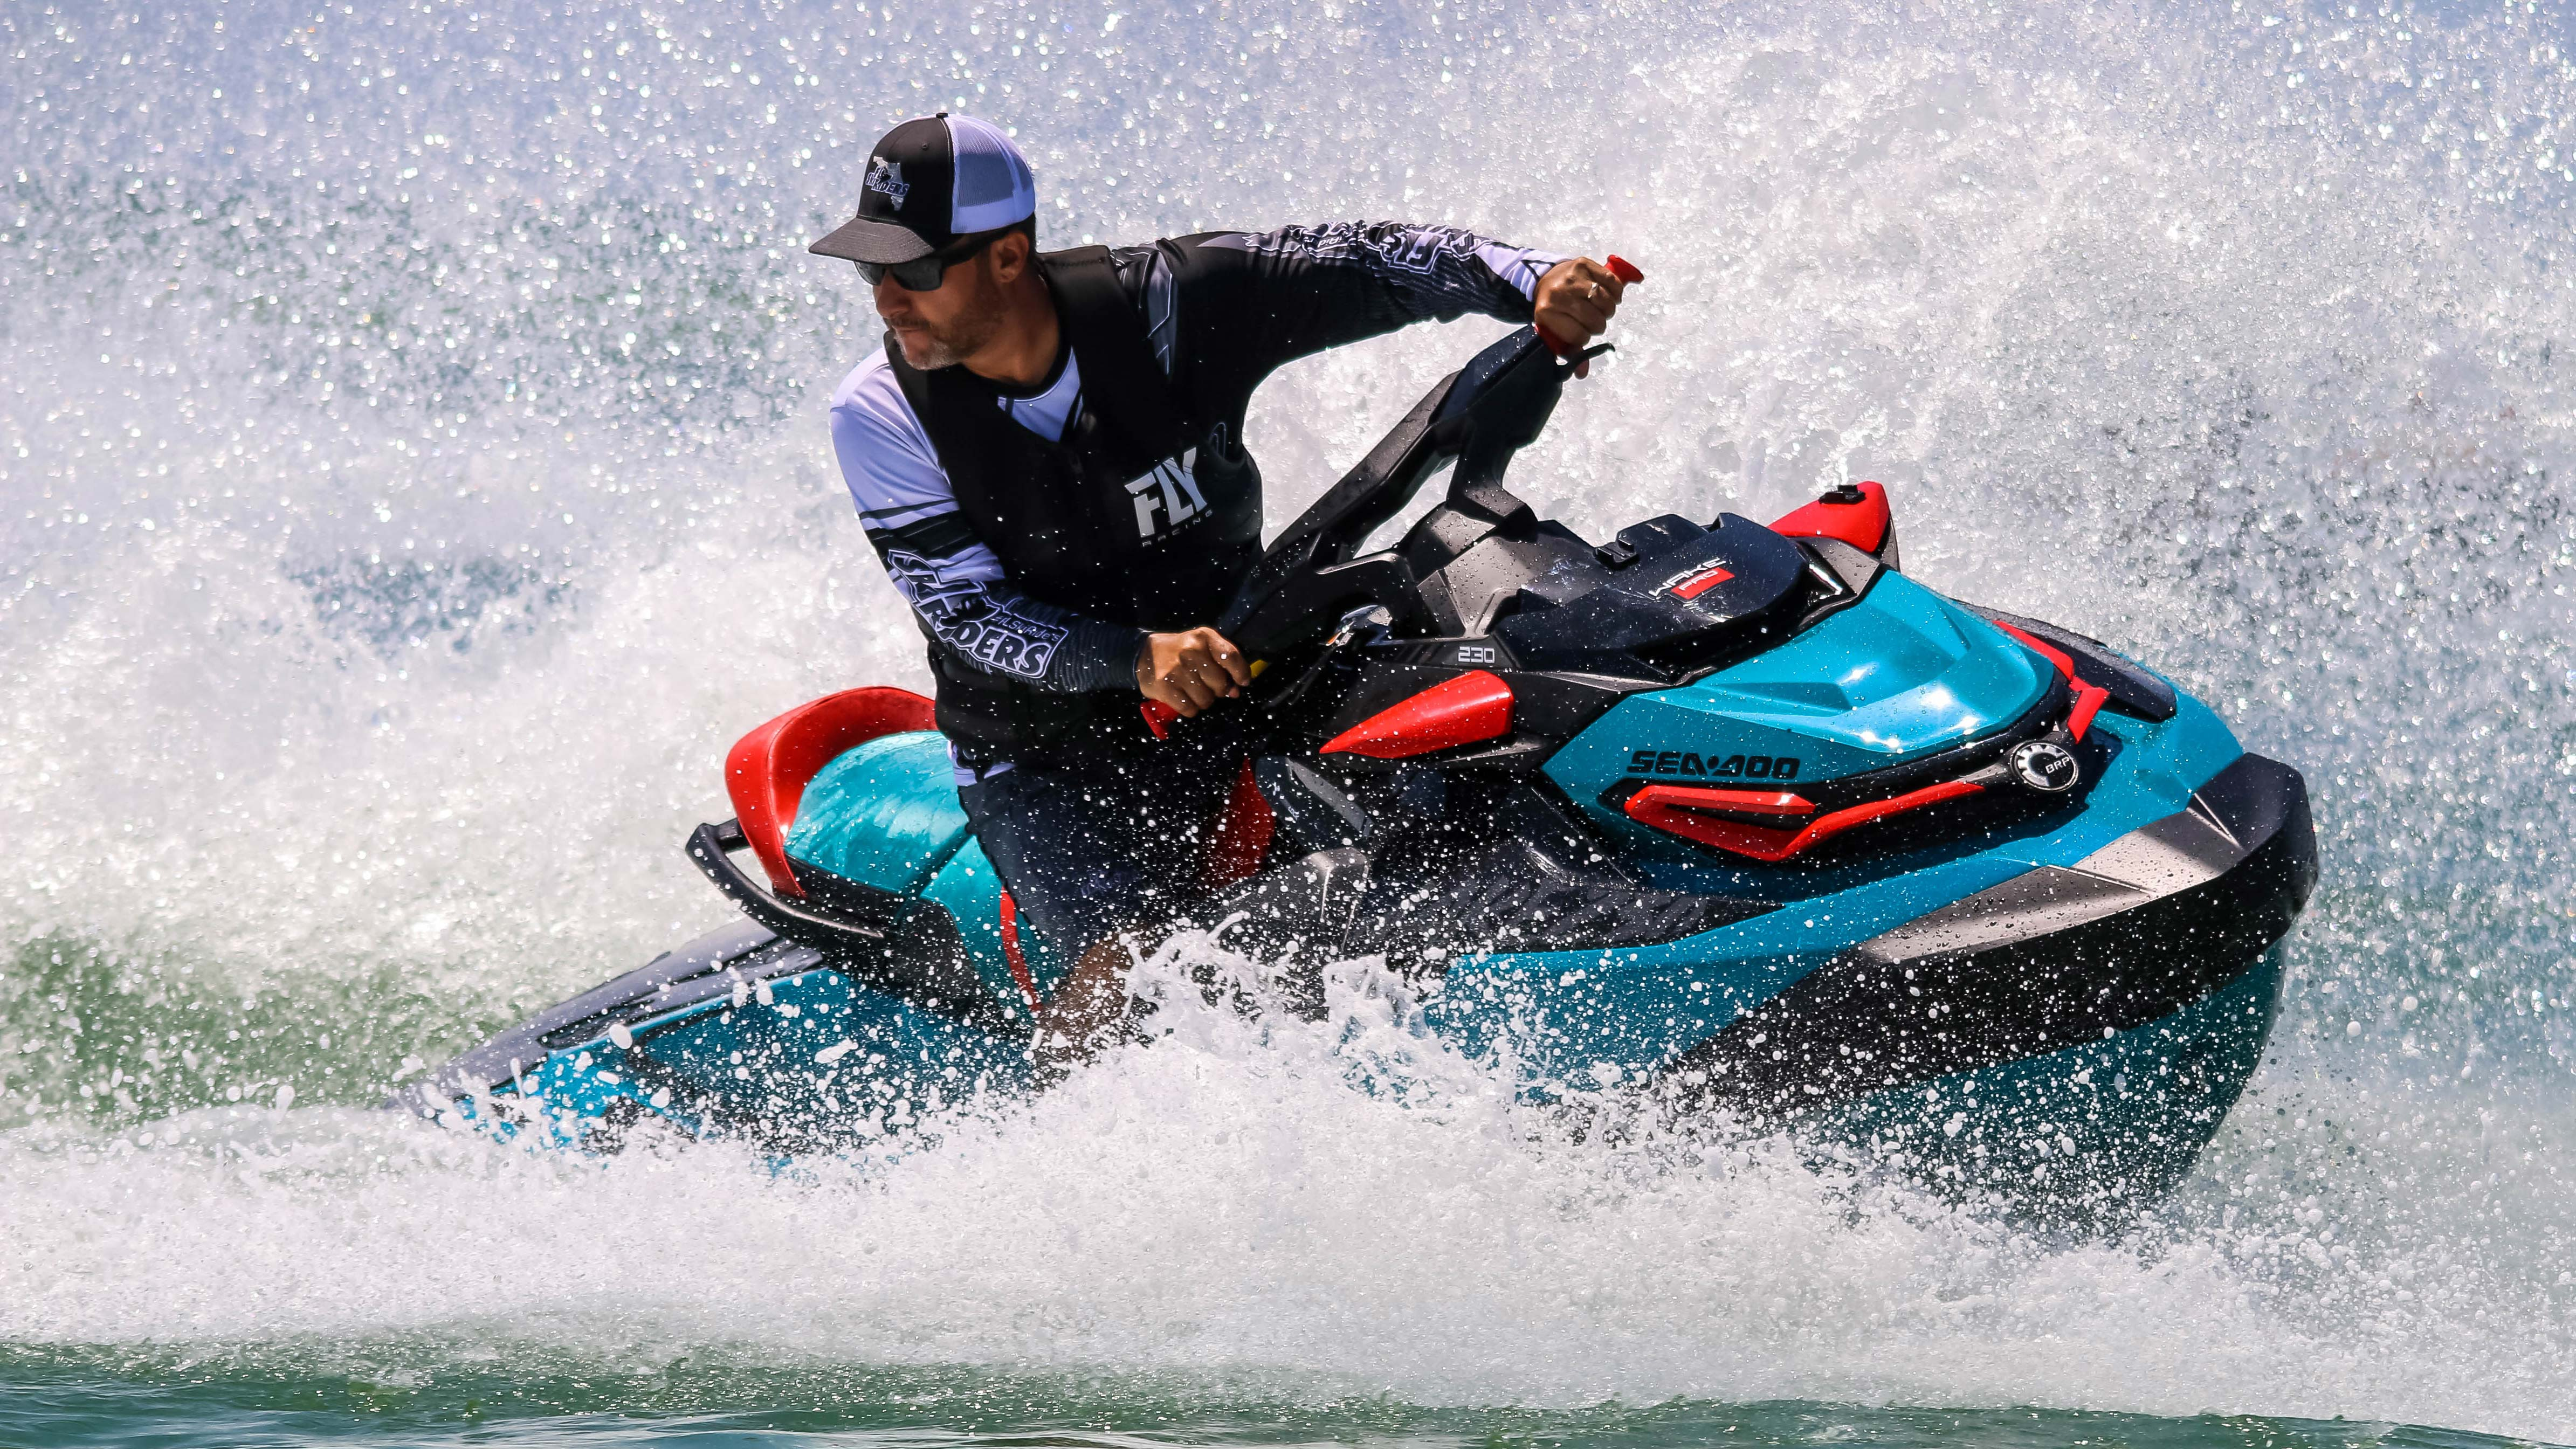 Randy Cabrera enjoying a Sea-Doo ride